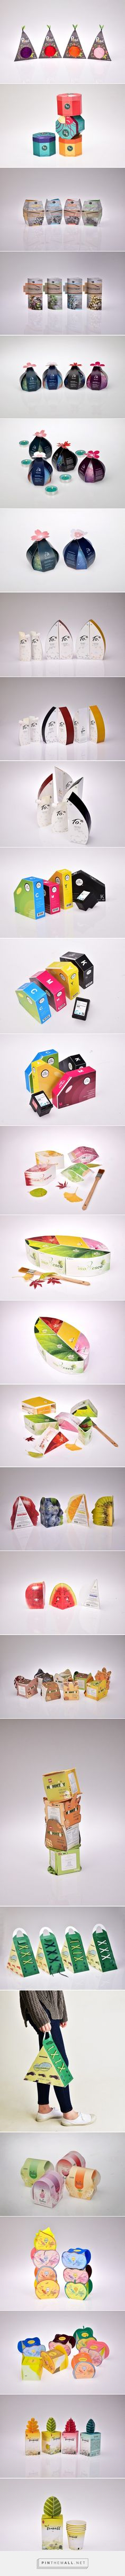 Some interesting packaging projects submitted by the design students of Hoseo University - http://www.packagingoftheworld.com/2016/12/hoseo-university-student-projects.html